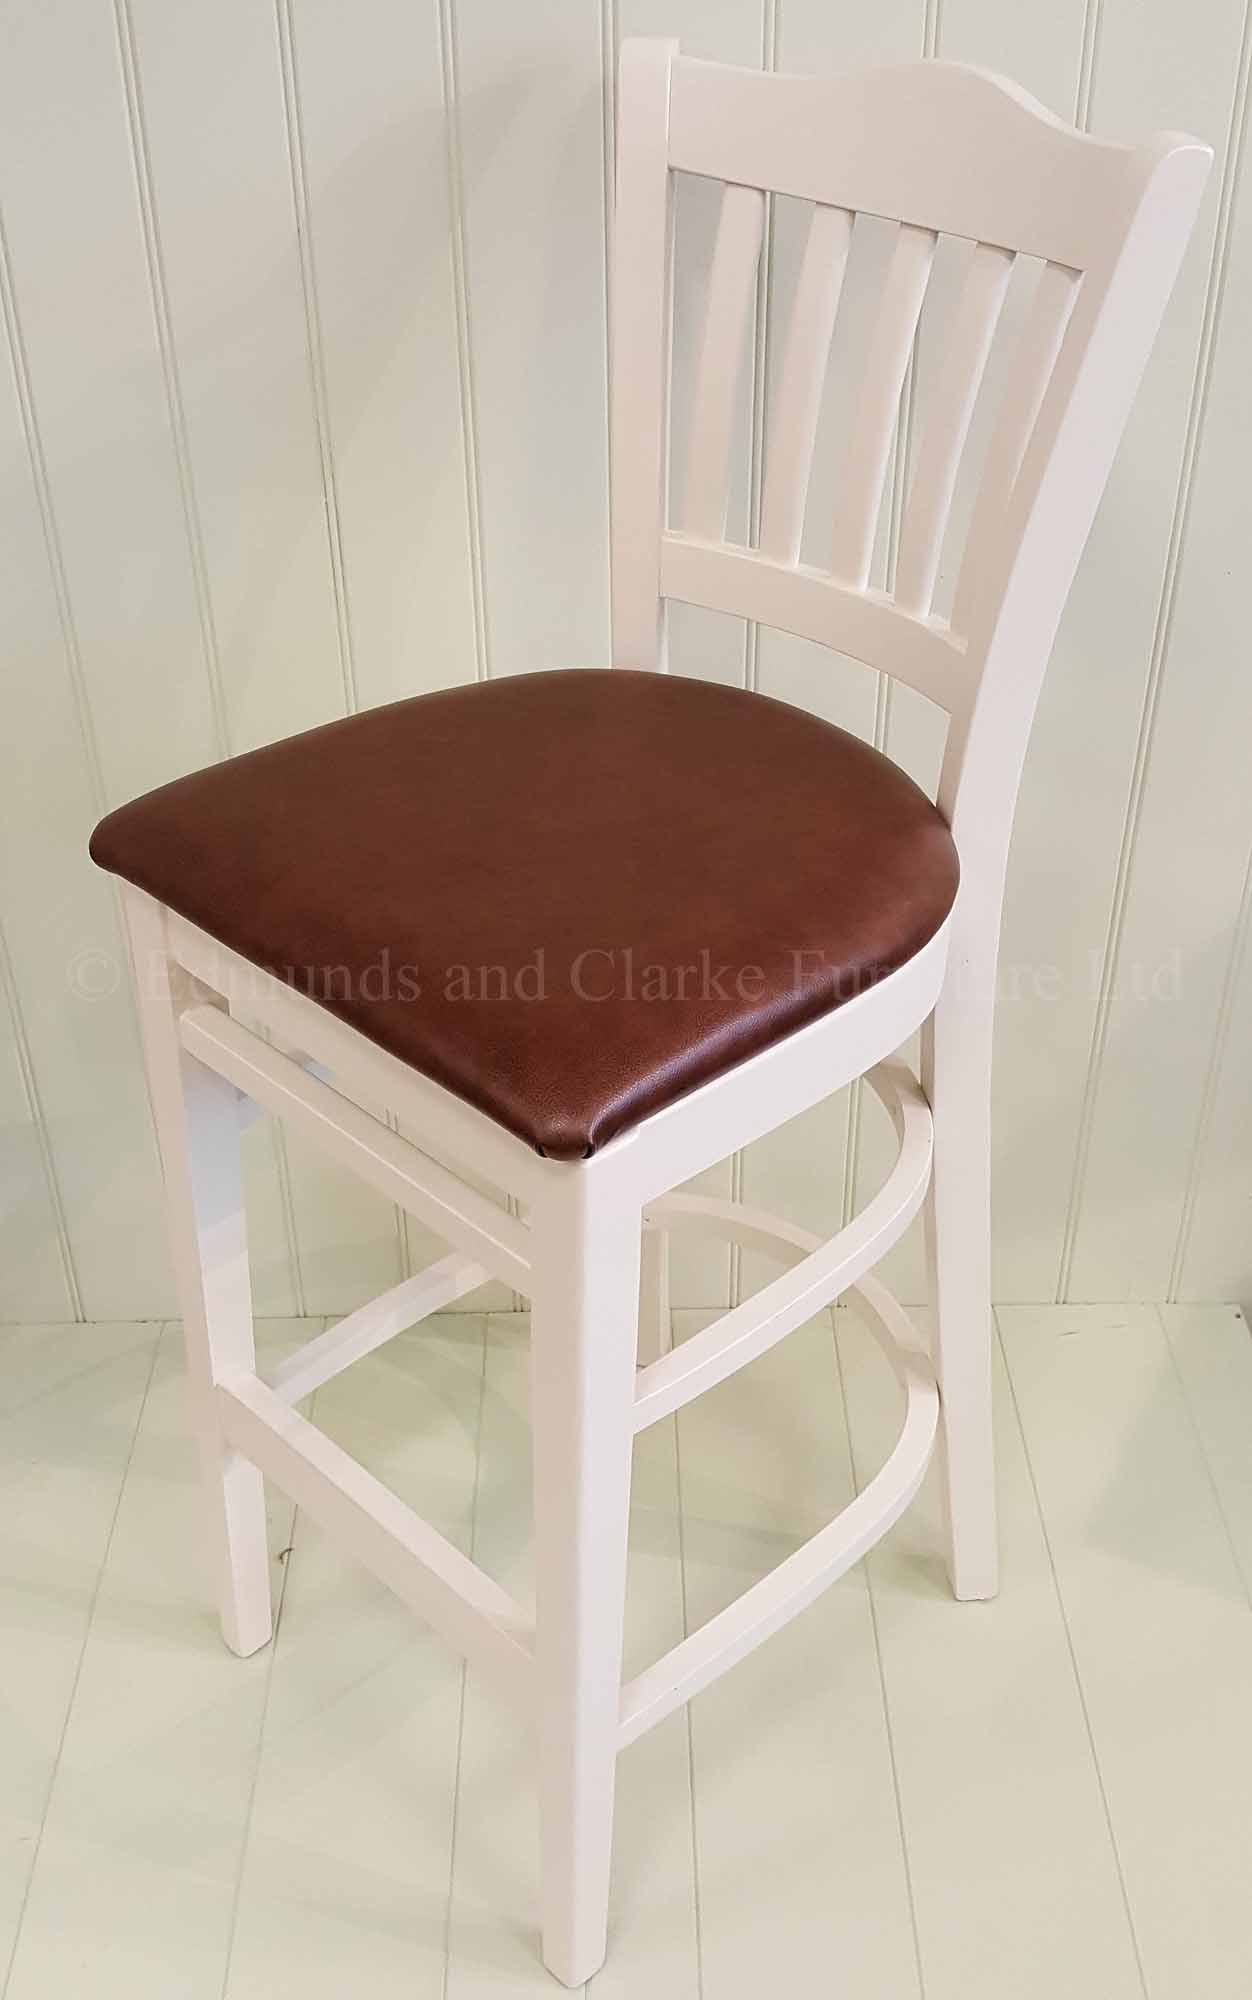 High painted kitchen bar stool painted with leather seat